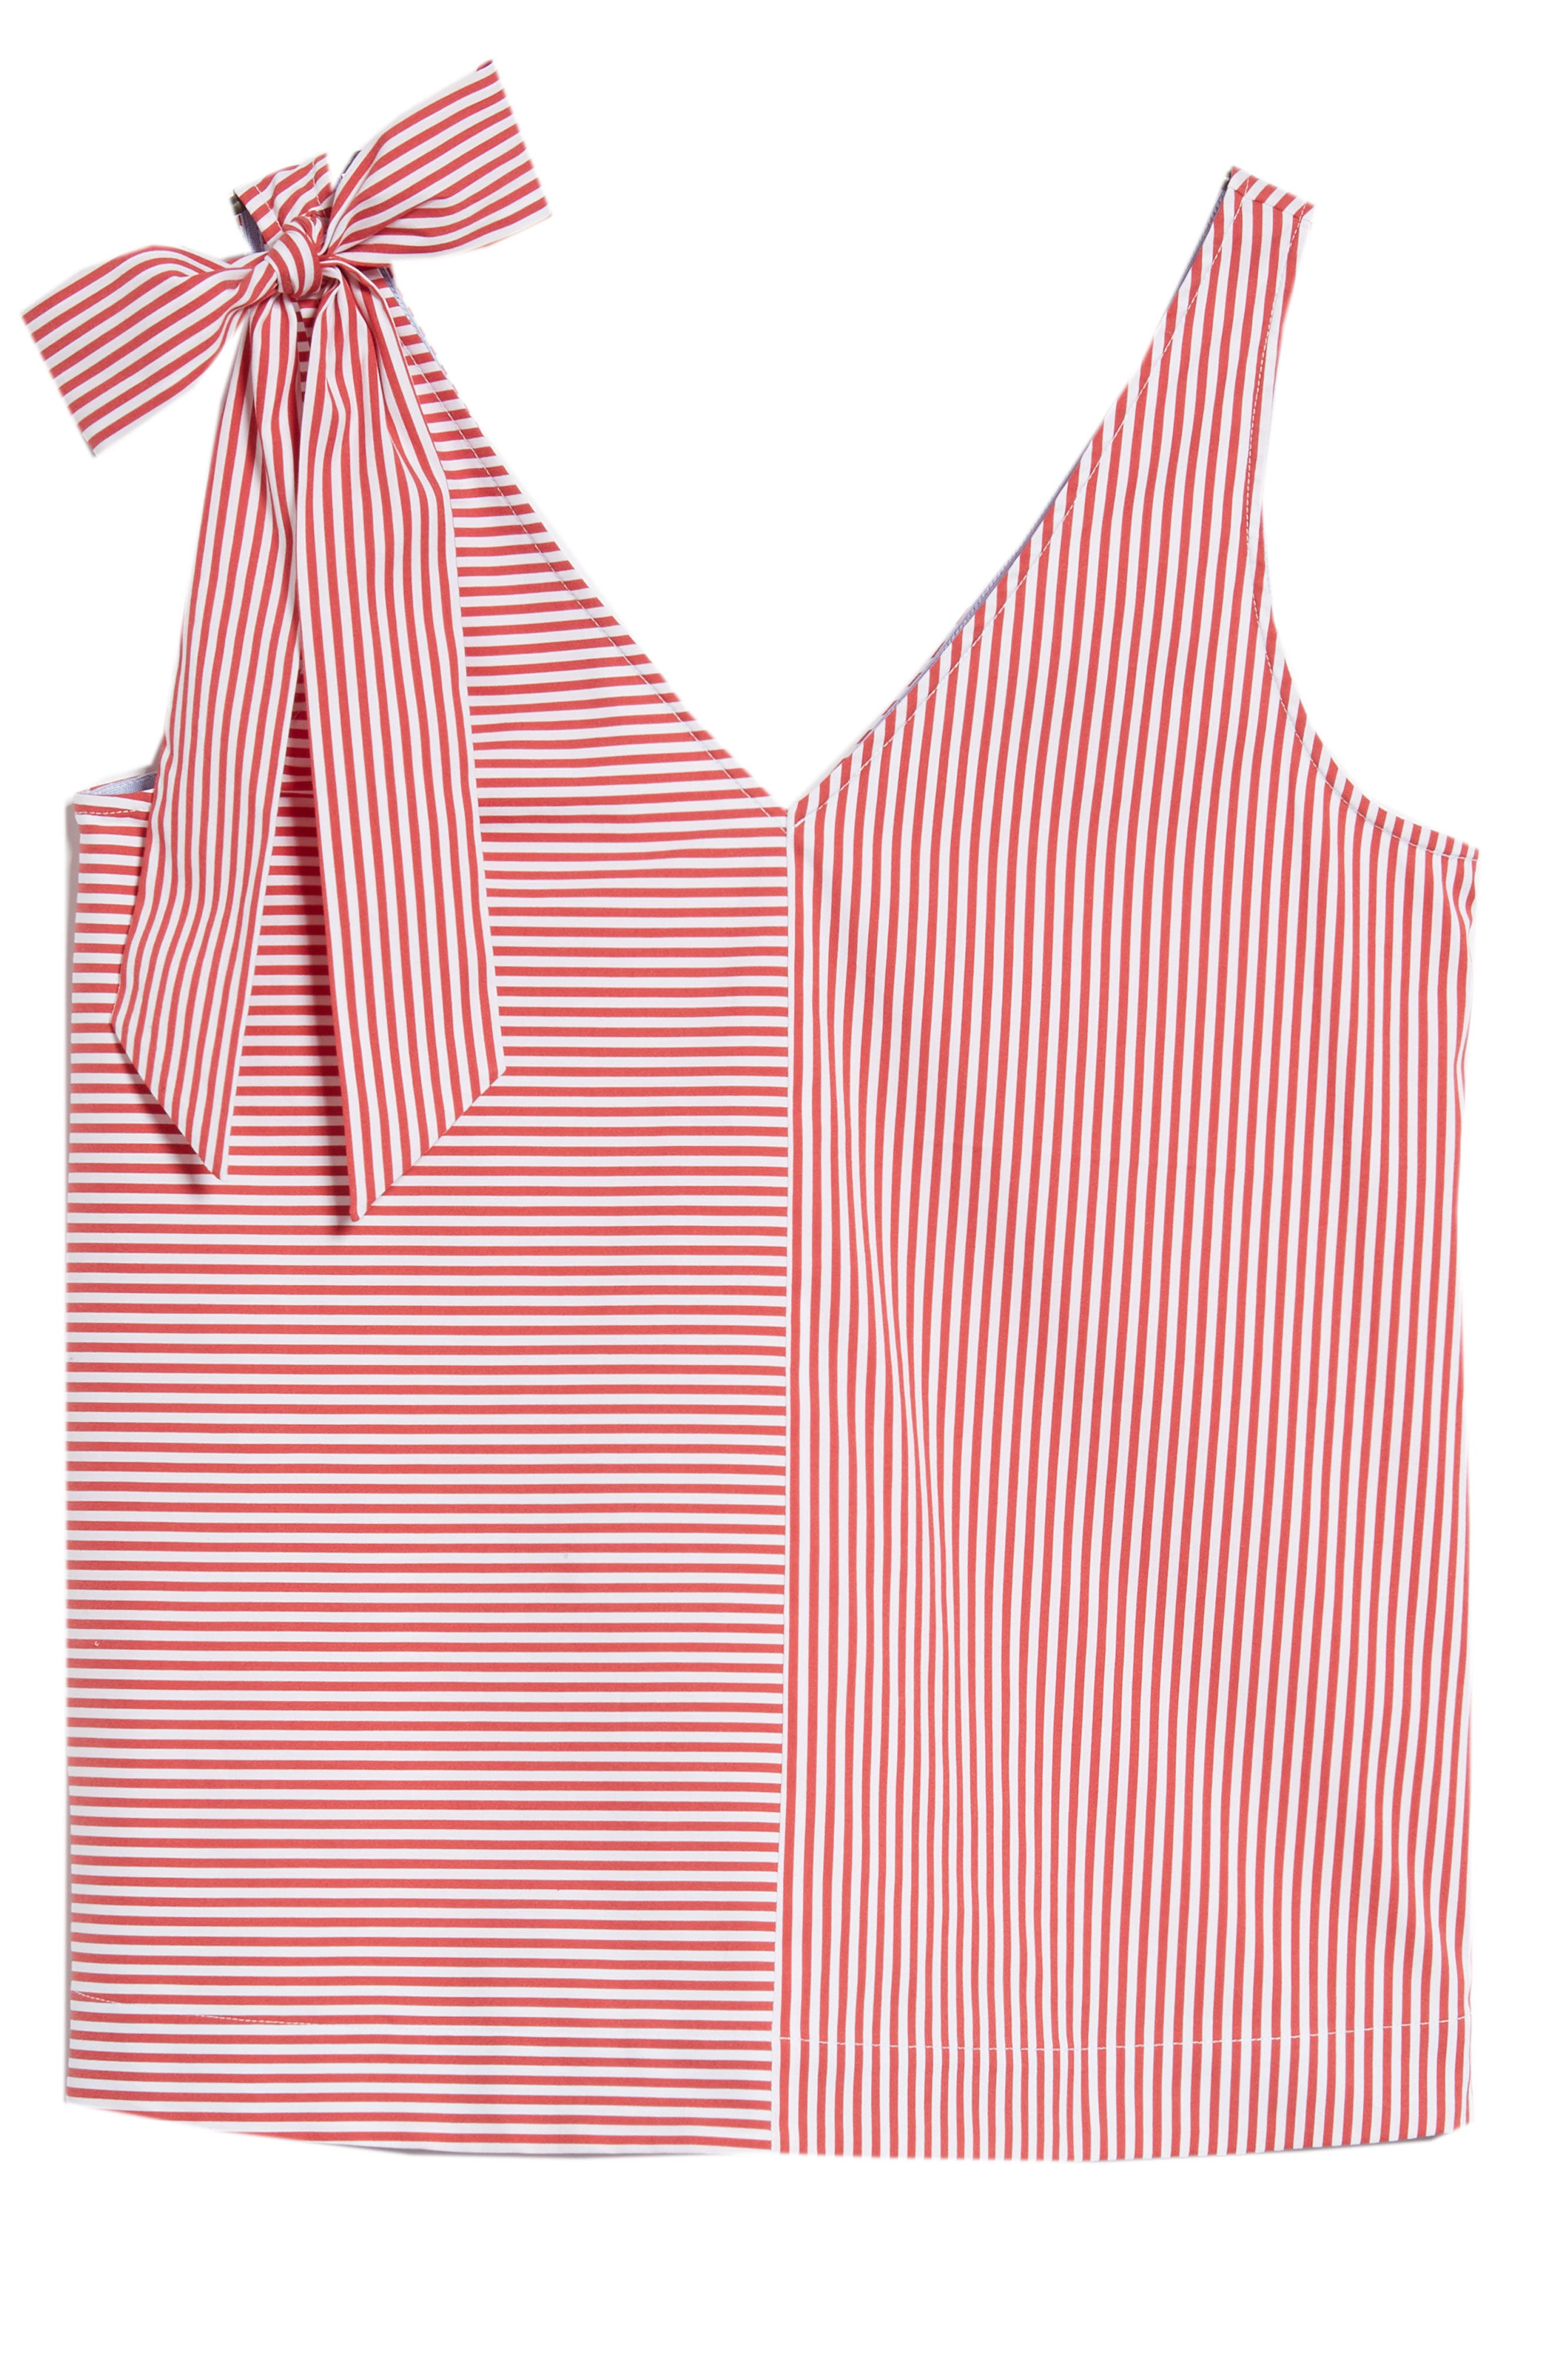 Sleeveless Striped Bow Top,                             Alternate thumbnail 6, color,                             621